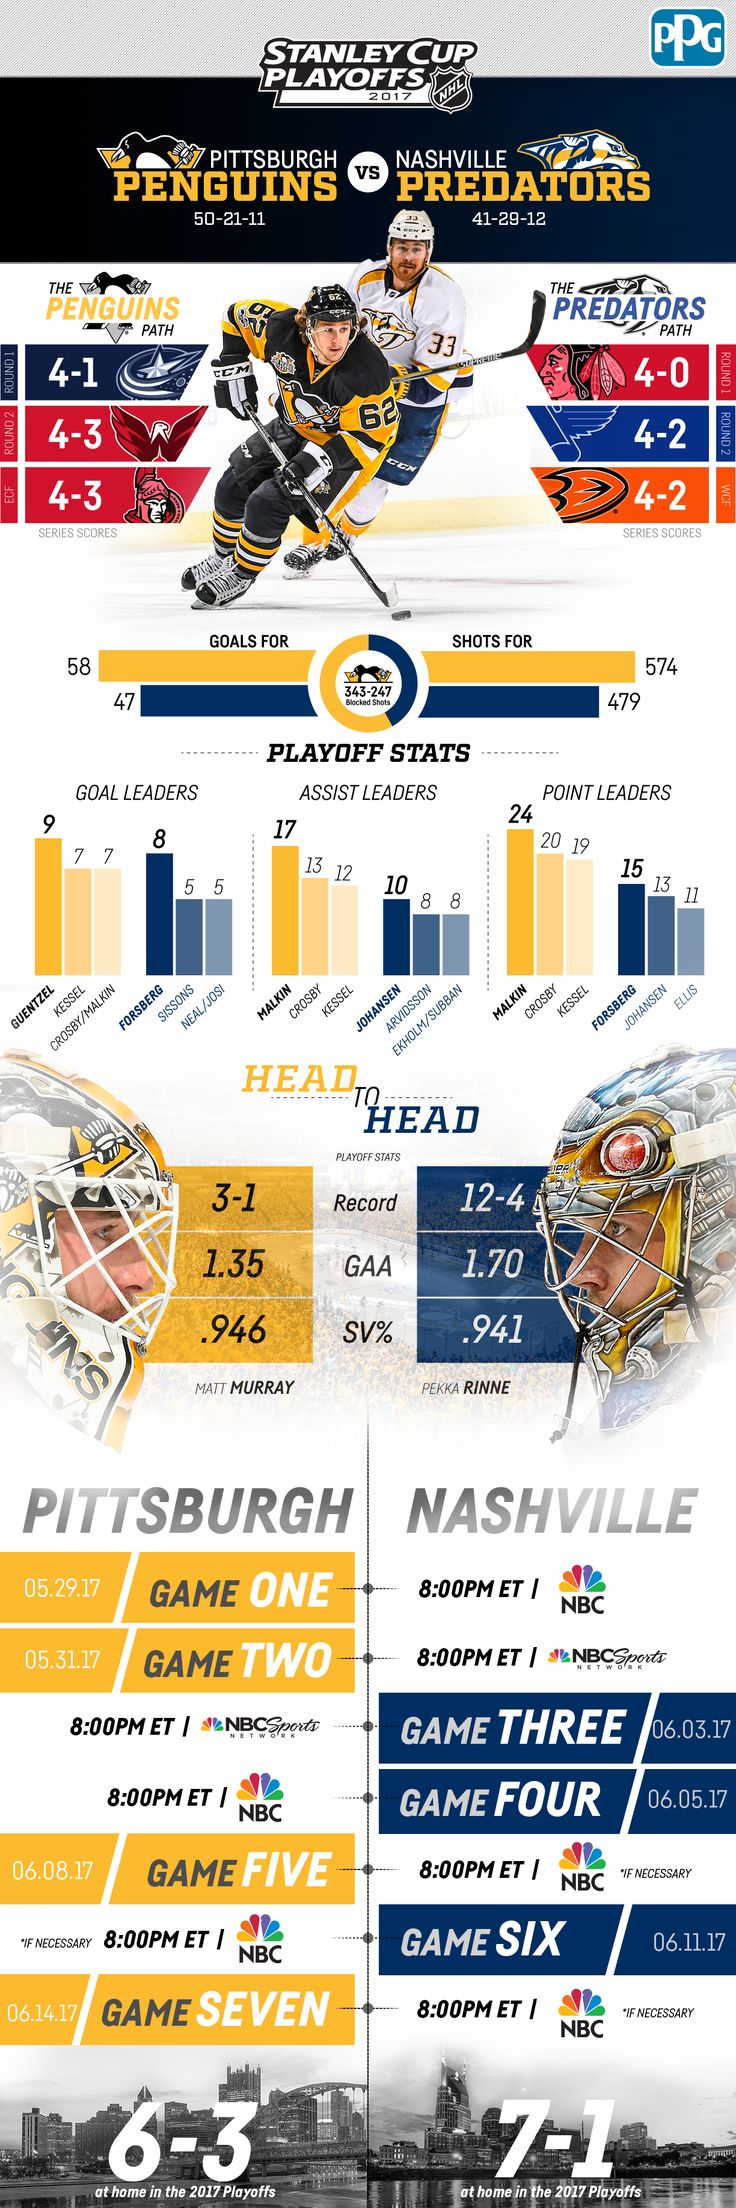 Here's everything you need to know about the Penguins and Predators Stanley Cup Final matchup in the 2017 Stanley Cup Playoffs.